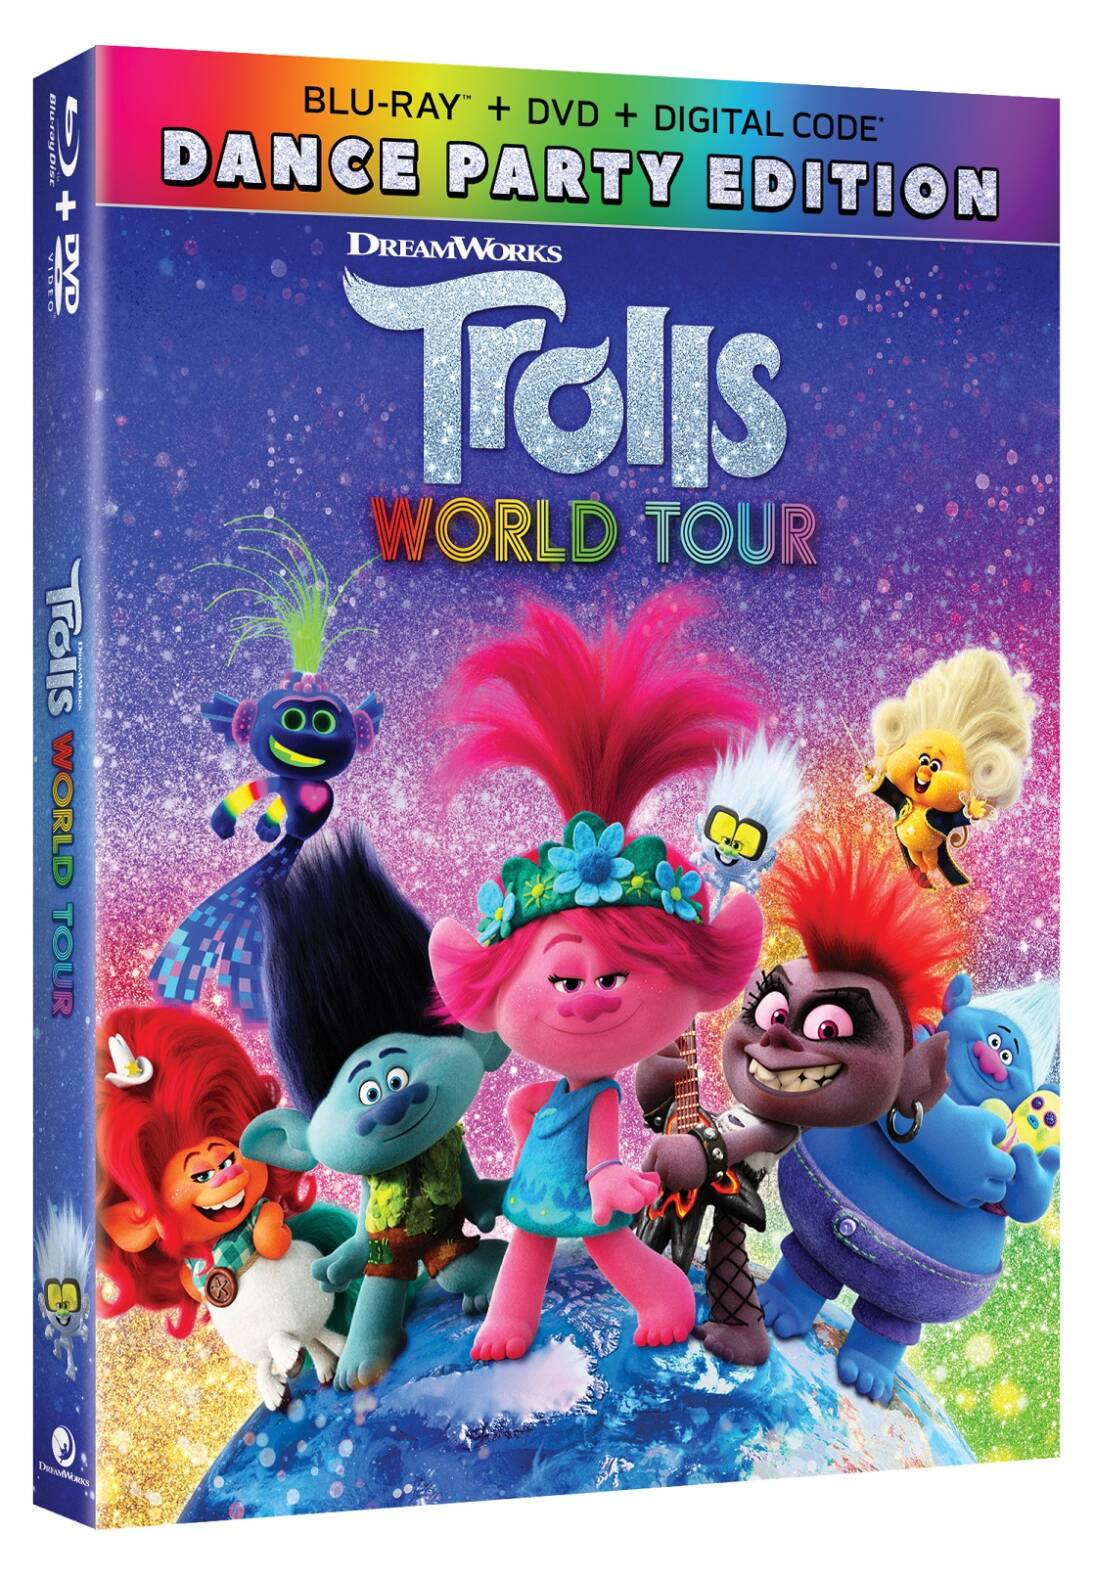 Trolls World Tour Now Available On 4k Ultra Hd Blu Ray Dvd Digital Outnumbered 3 To 1 For the species of the same name, see trolls (species). 4k ultra hd blu ray dvd